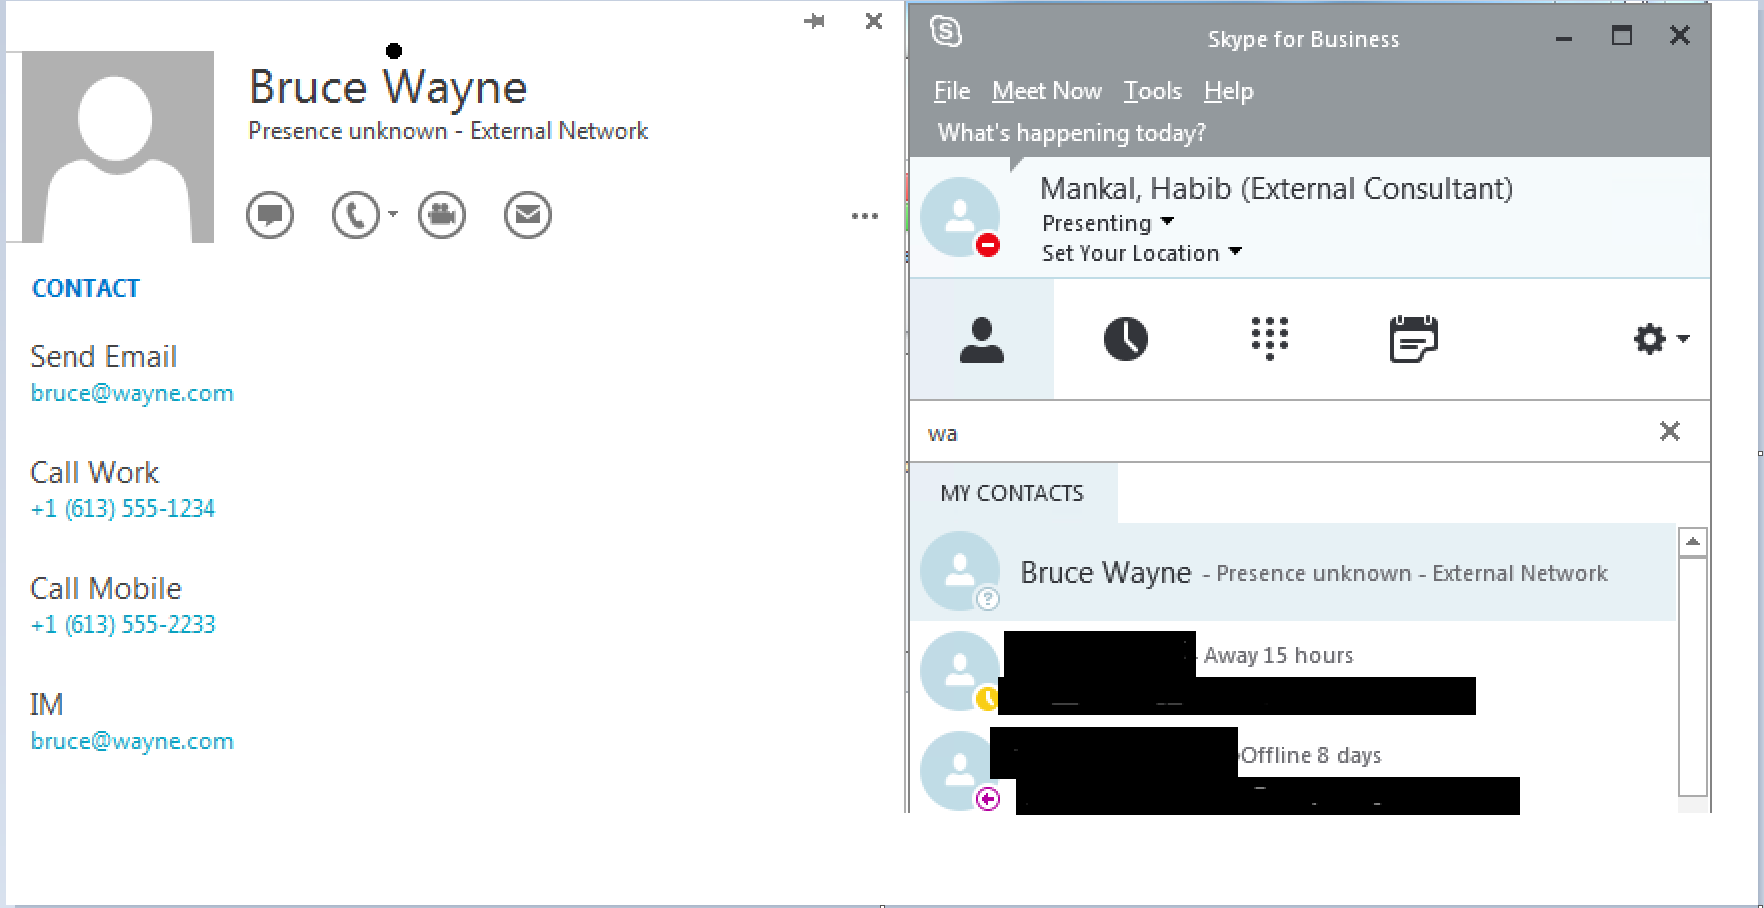 how to delete contact from skype for business